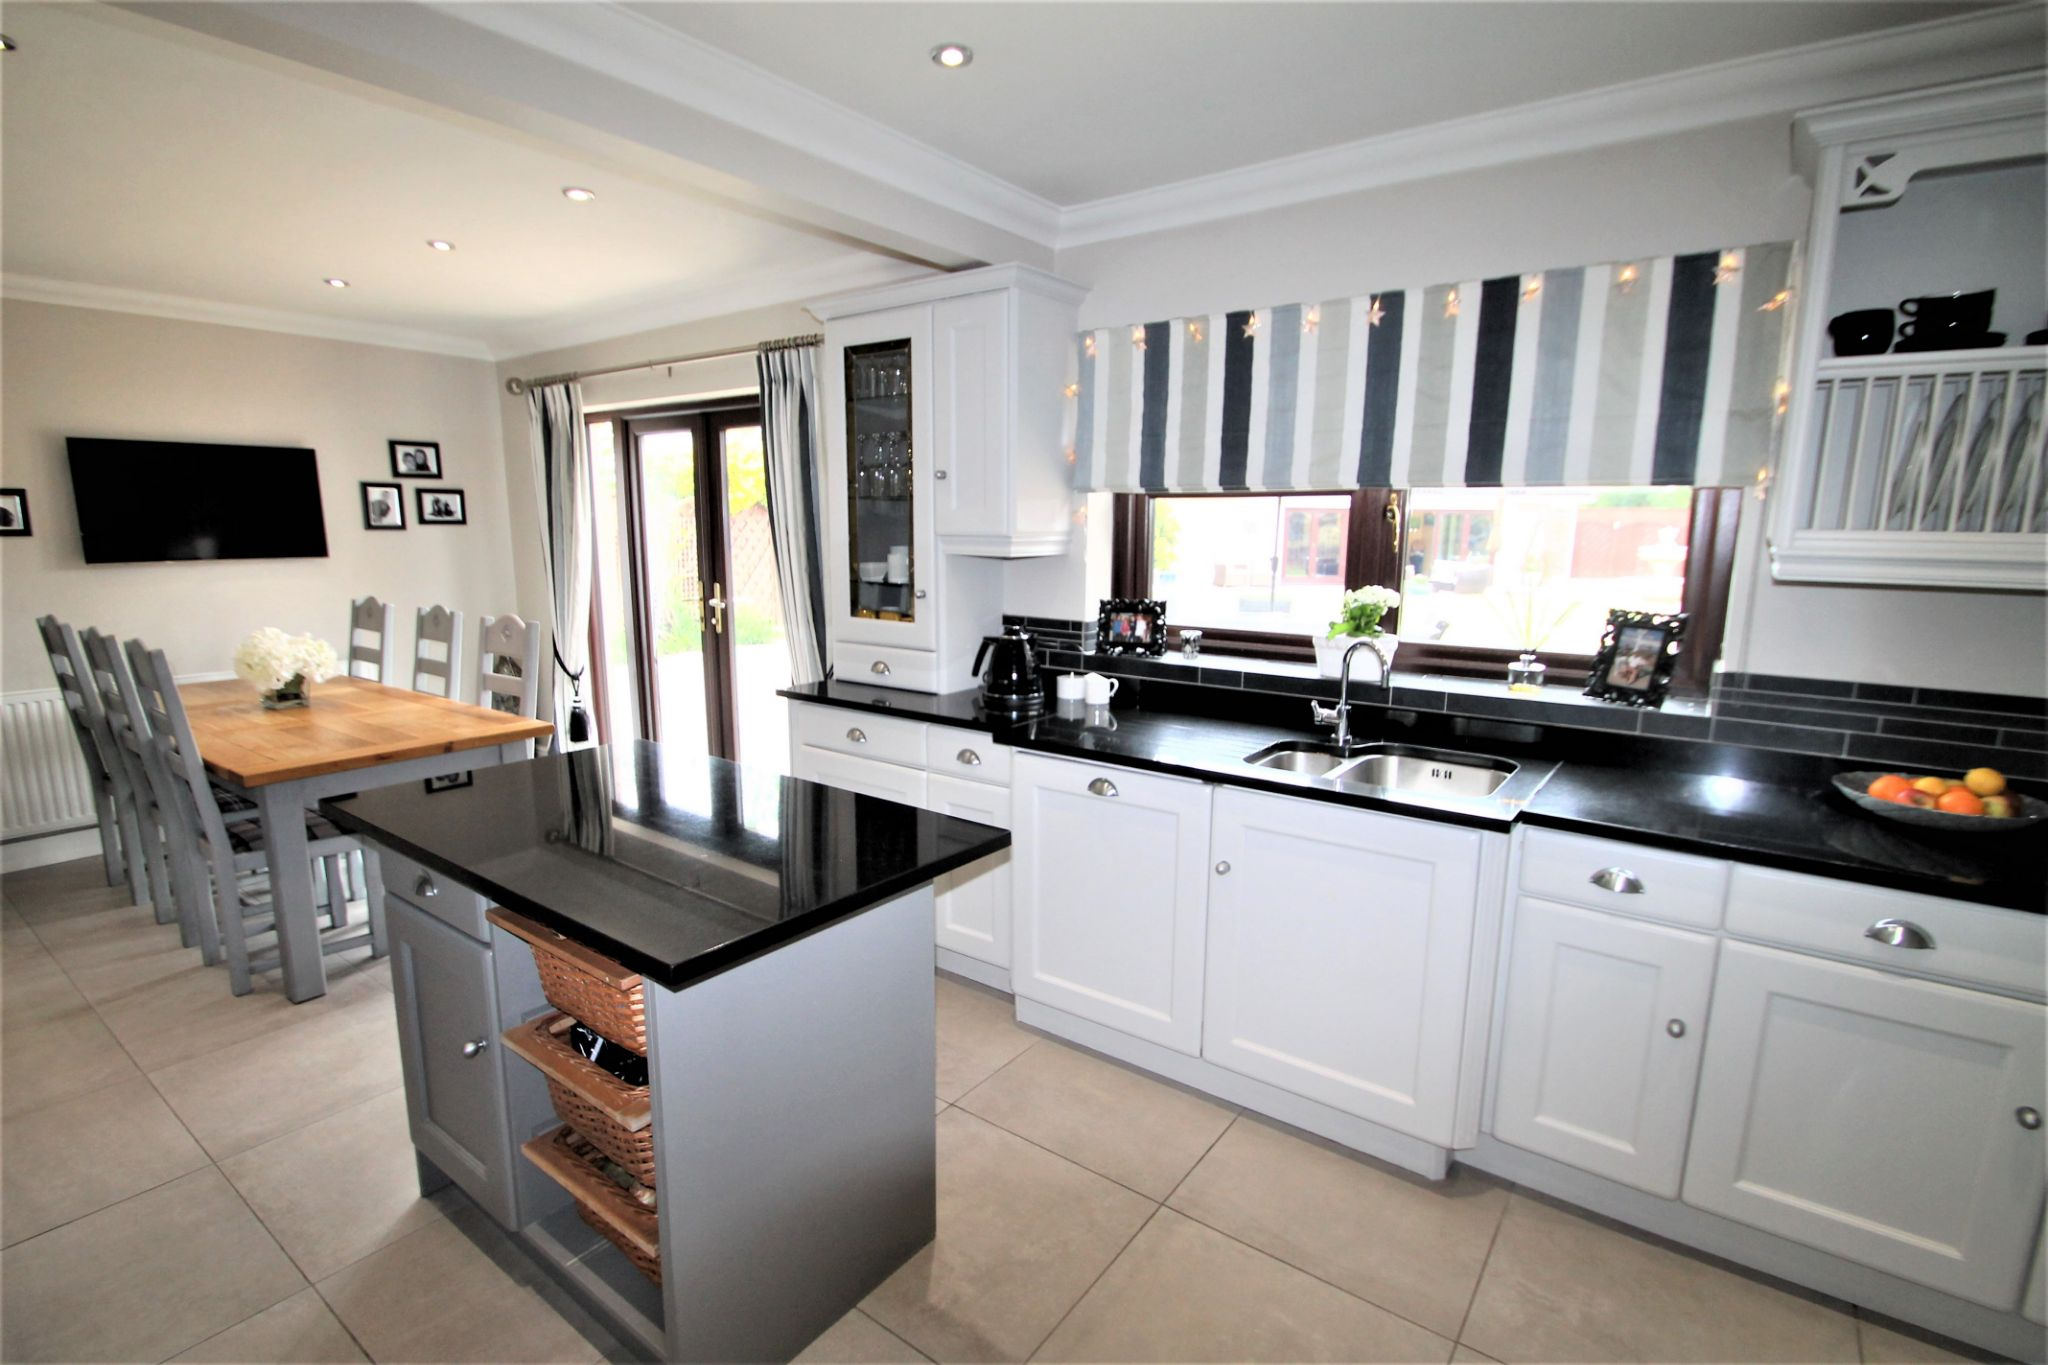 5 Bedroom Detached House For Sale - Kitchen/Diner